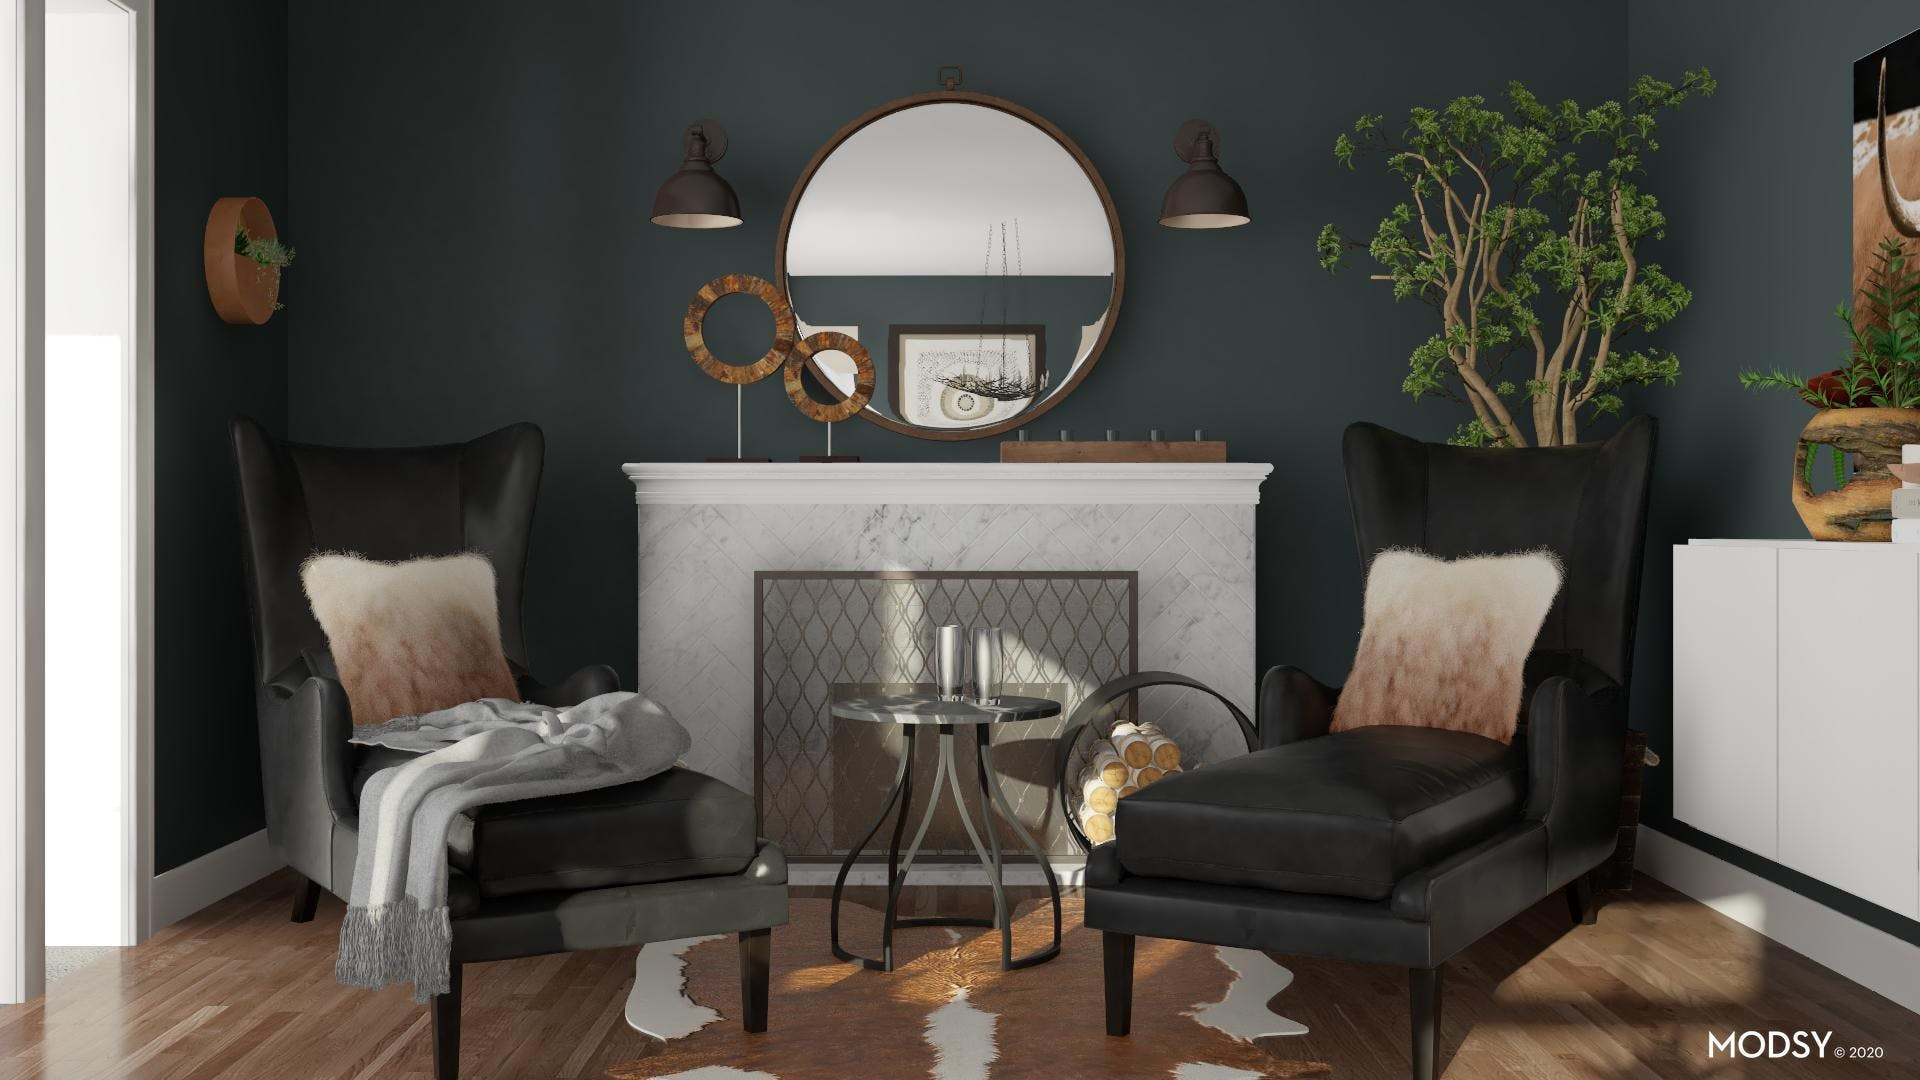 Rustic Cozy: Fireplace Chaise